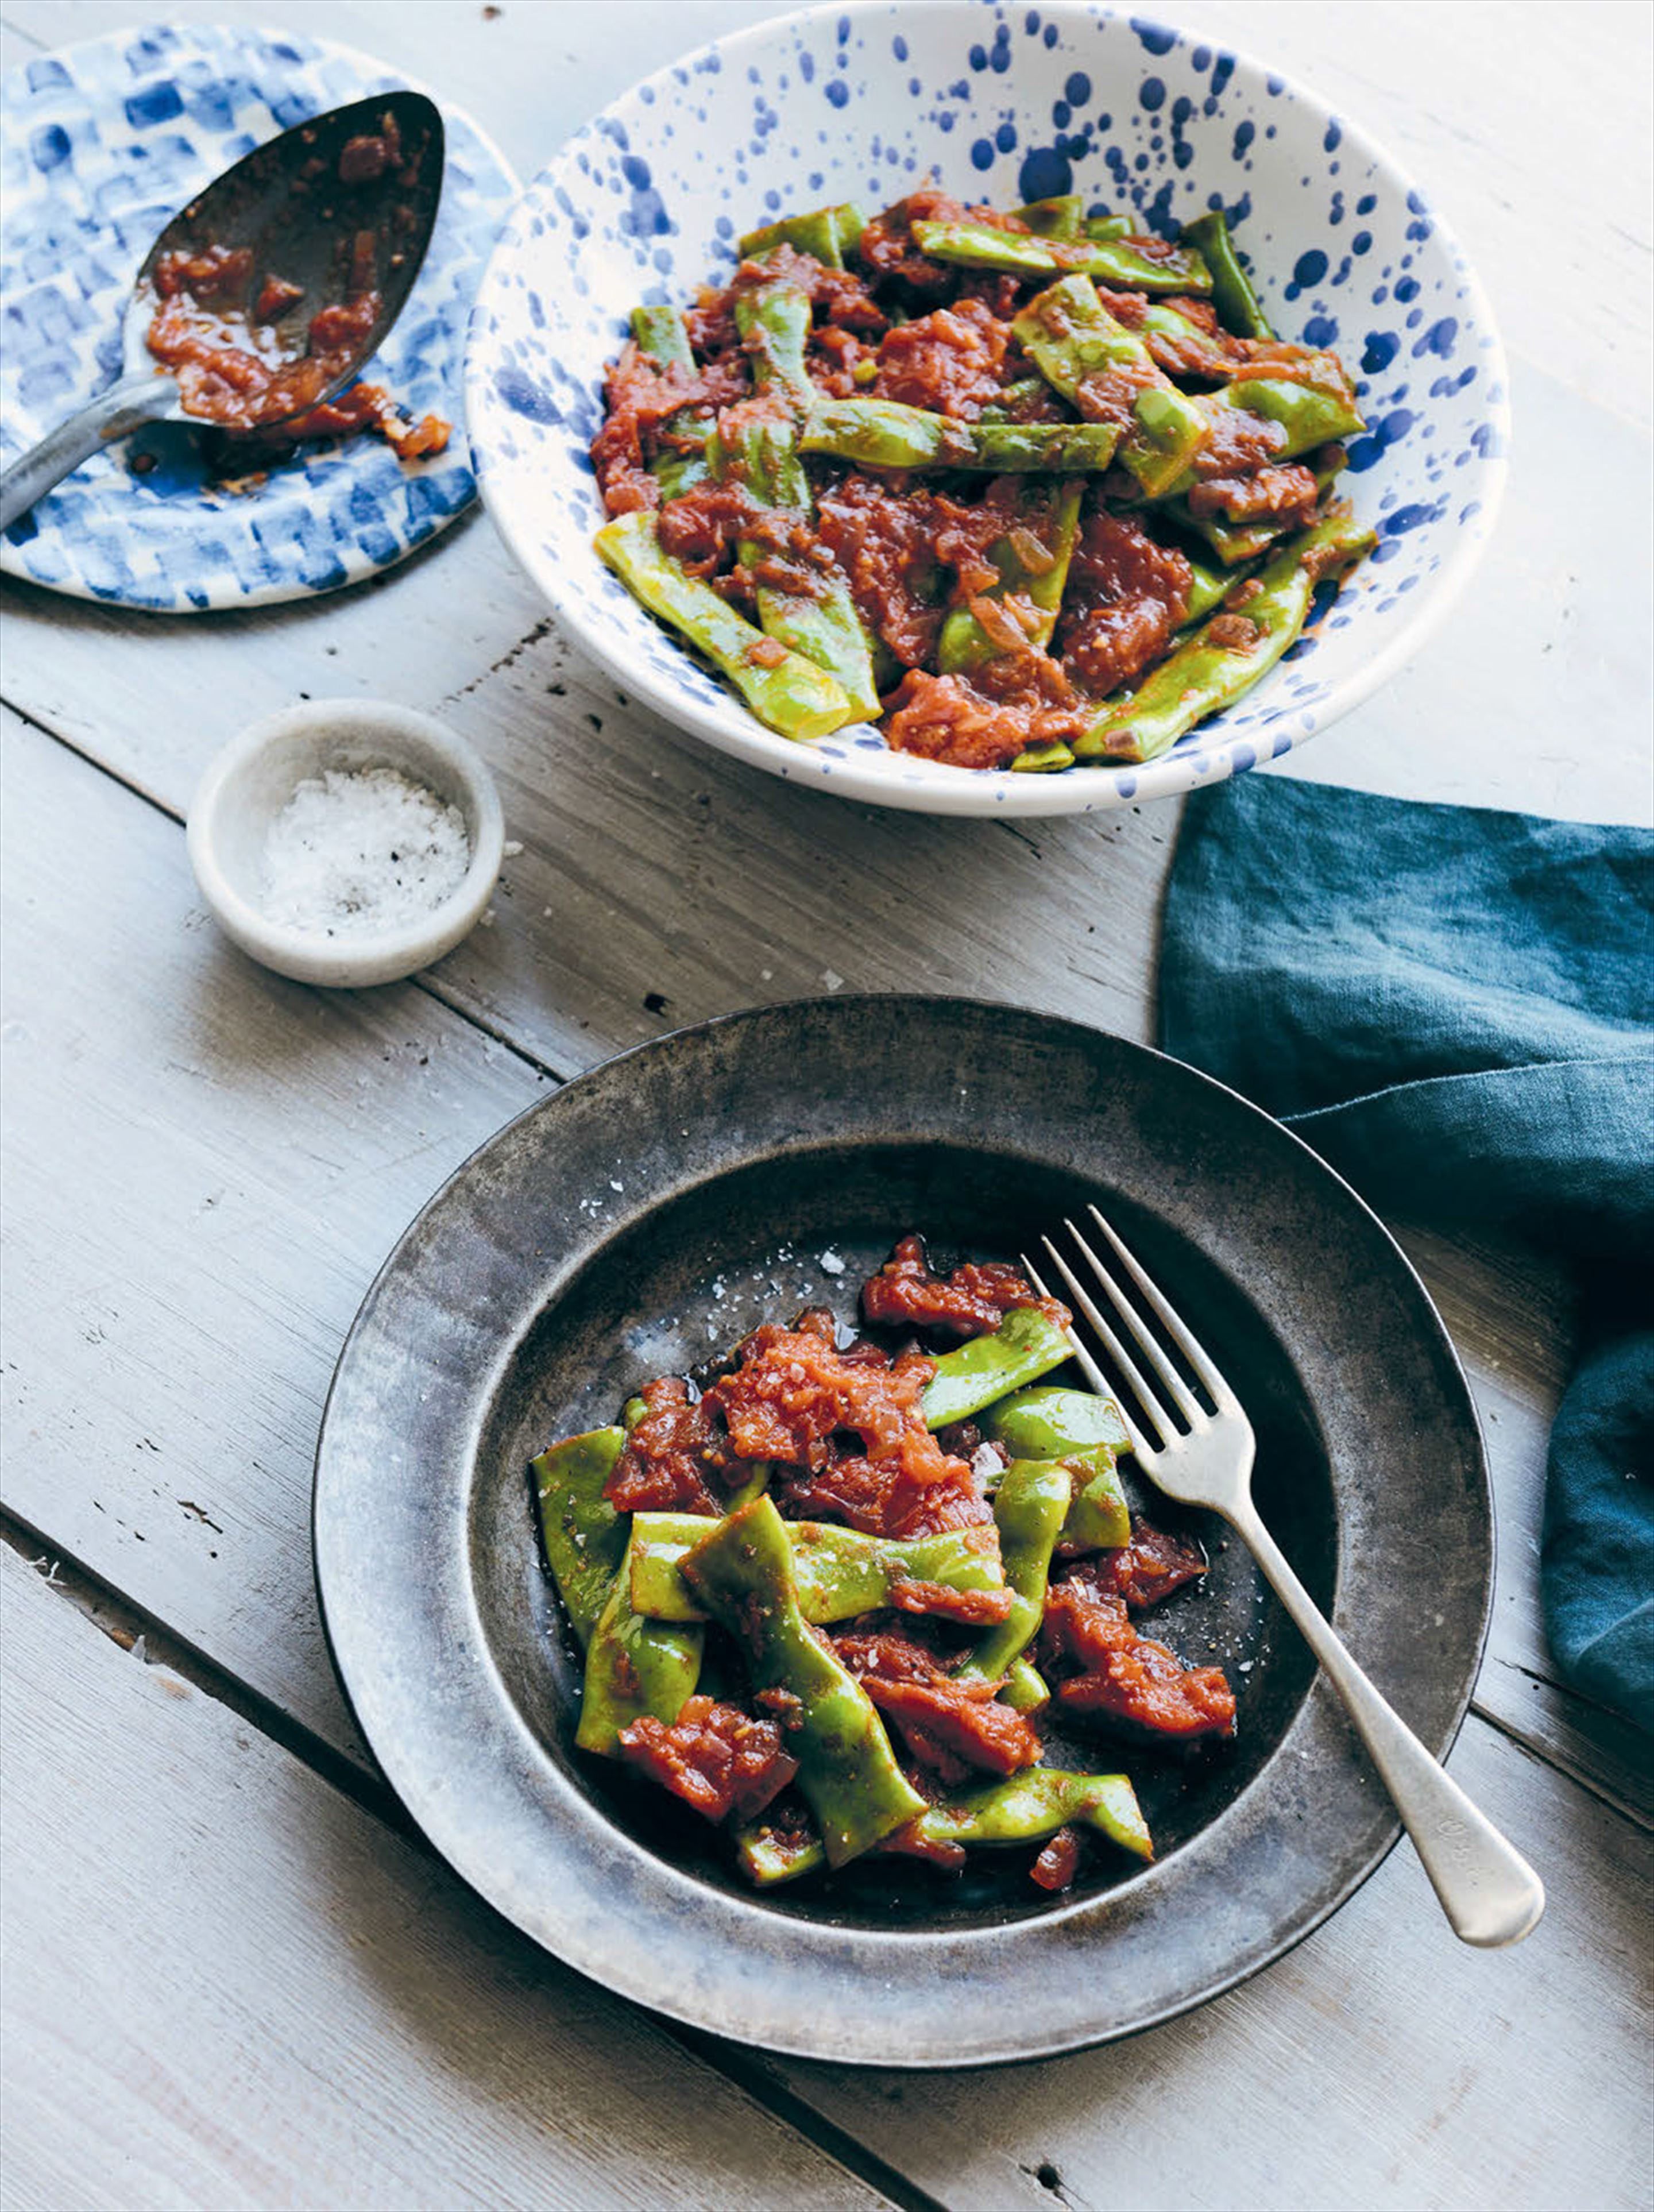 Florentine-style green beans